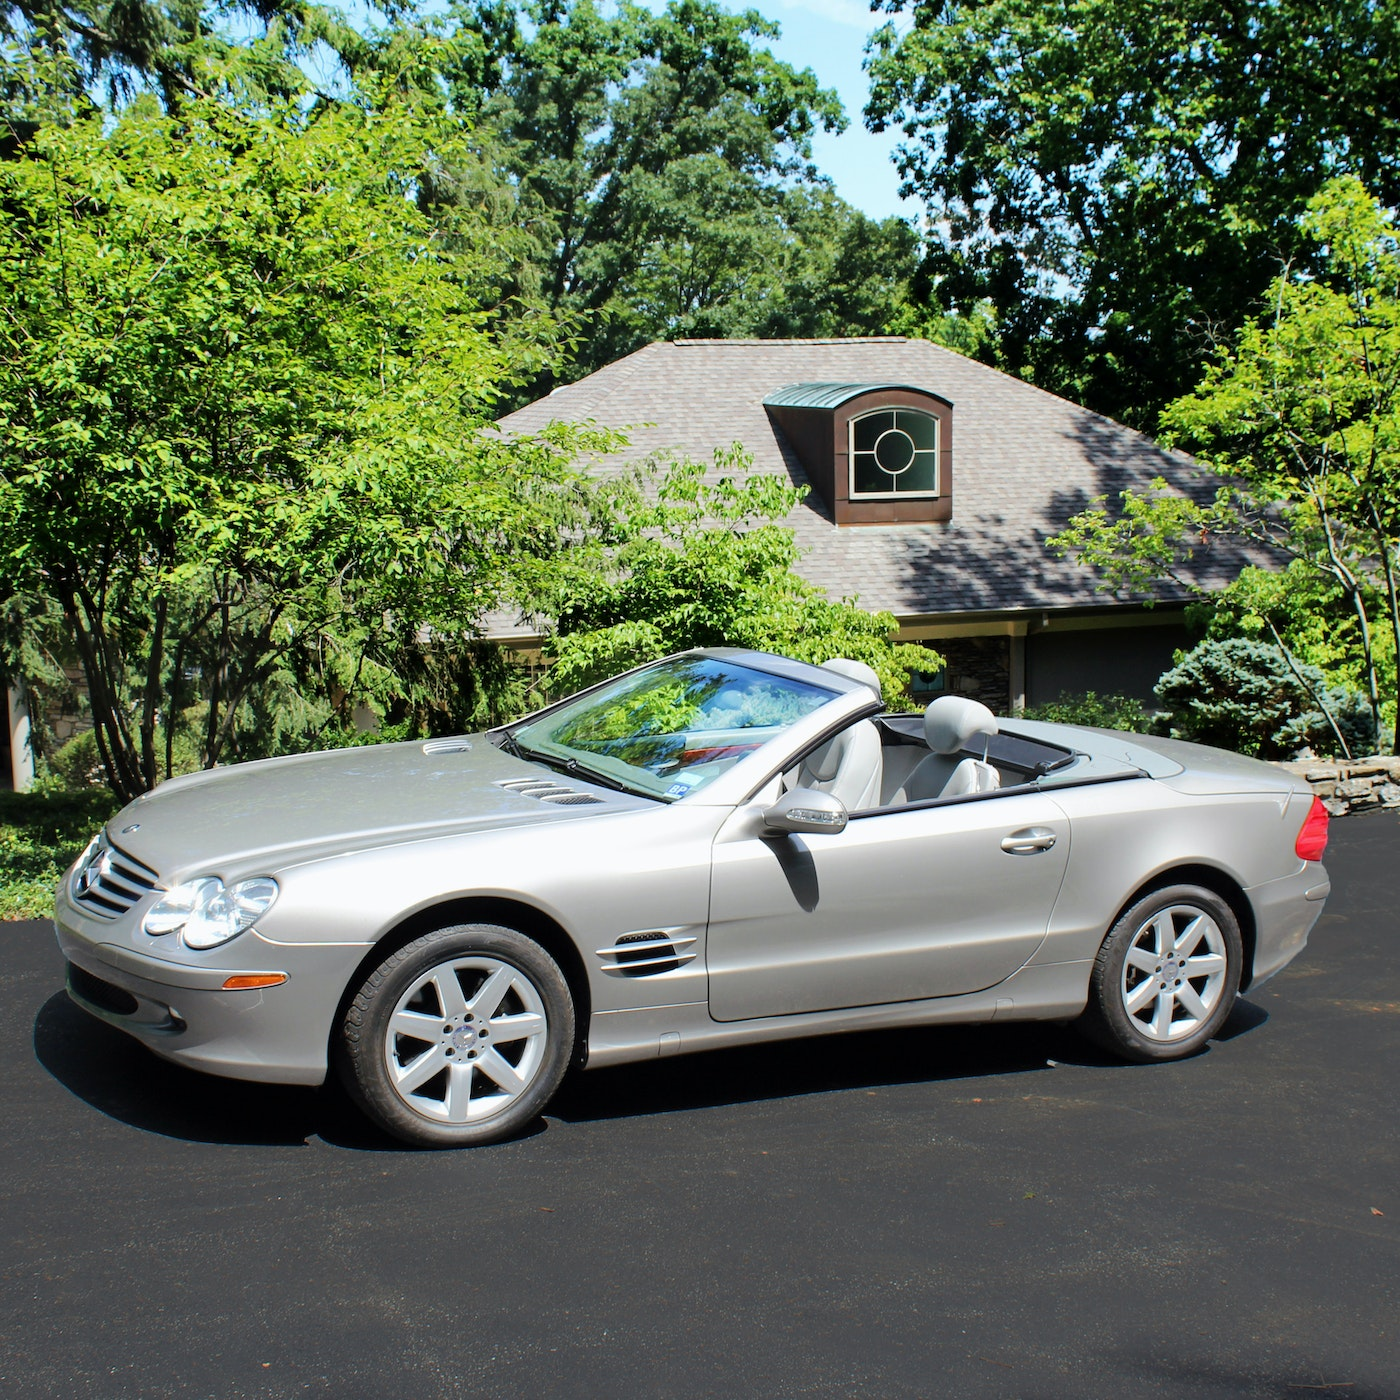 2003 mercedes benz 500 sl roadster convertible coupe ebth for Mercedes benz 500 convertible